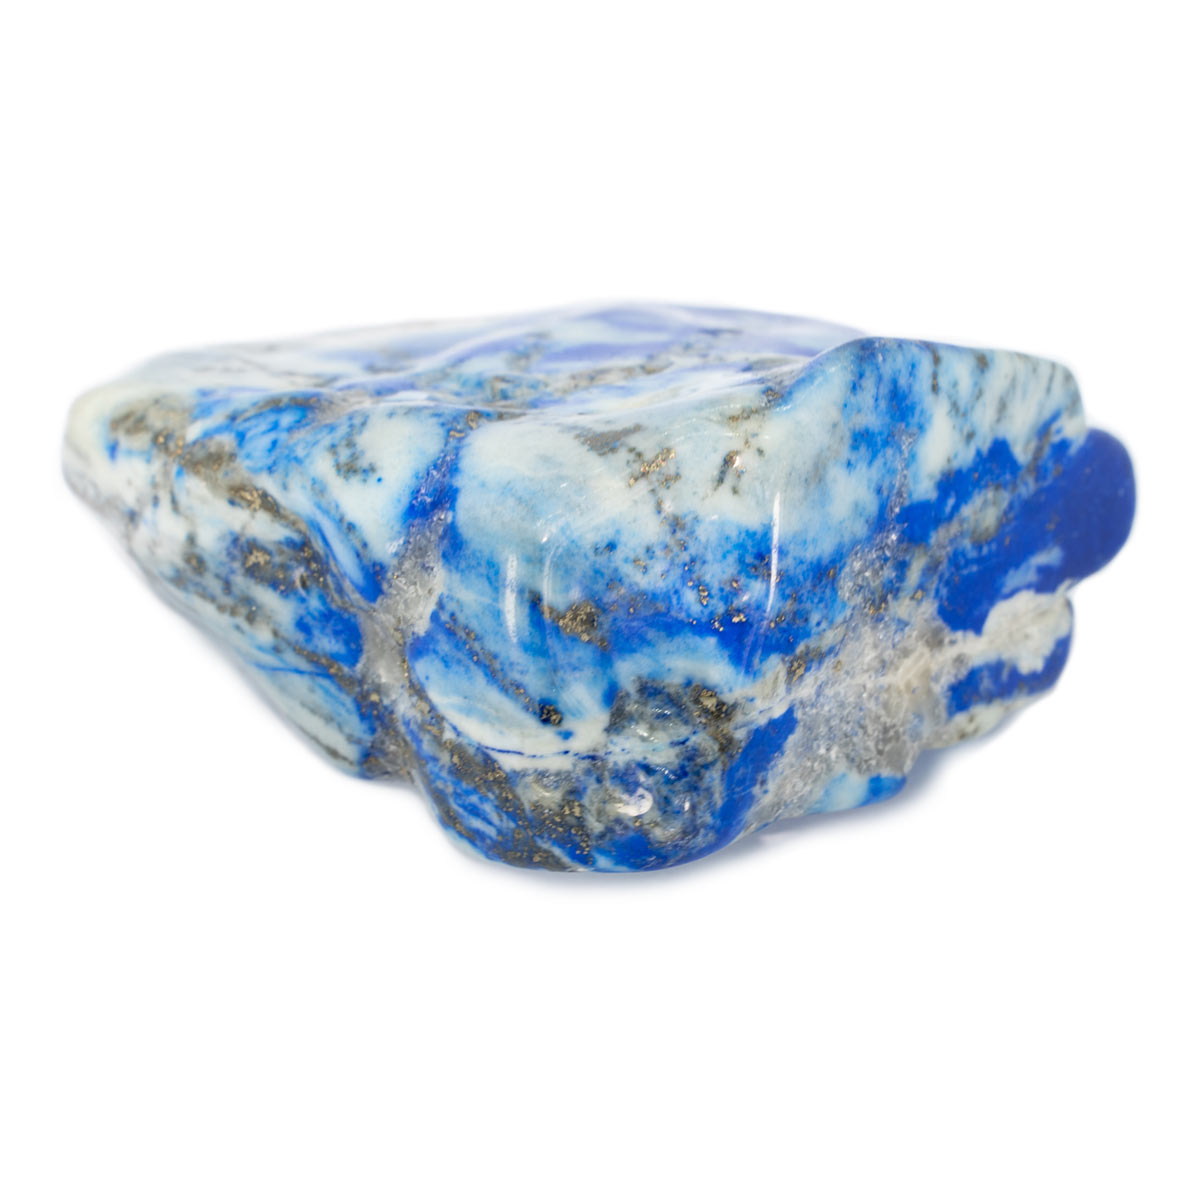 Sri Avinash Infused™ Lapis Lazuli Freeform - Love & Compassion Infusion